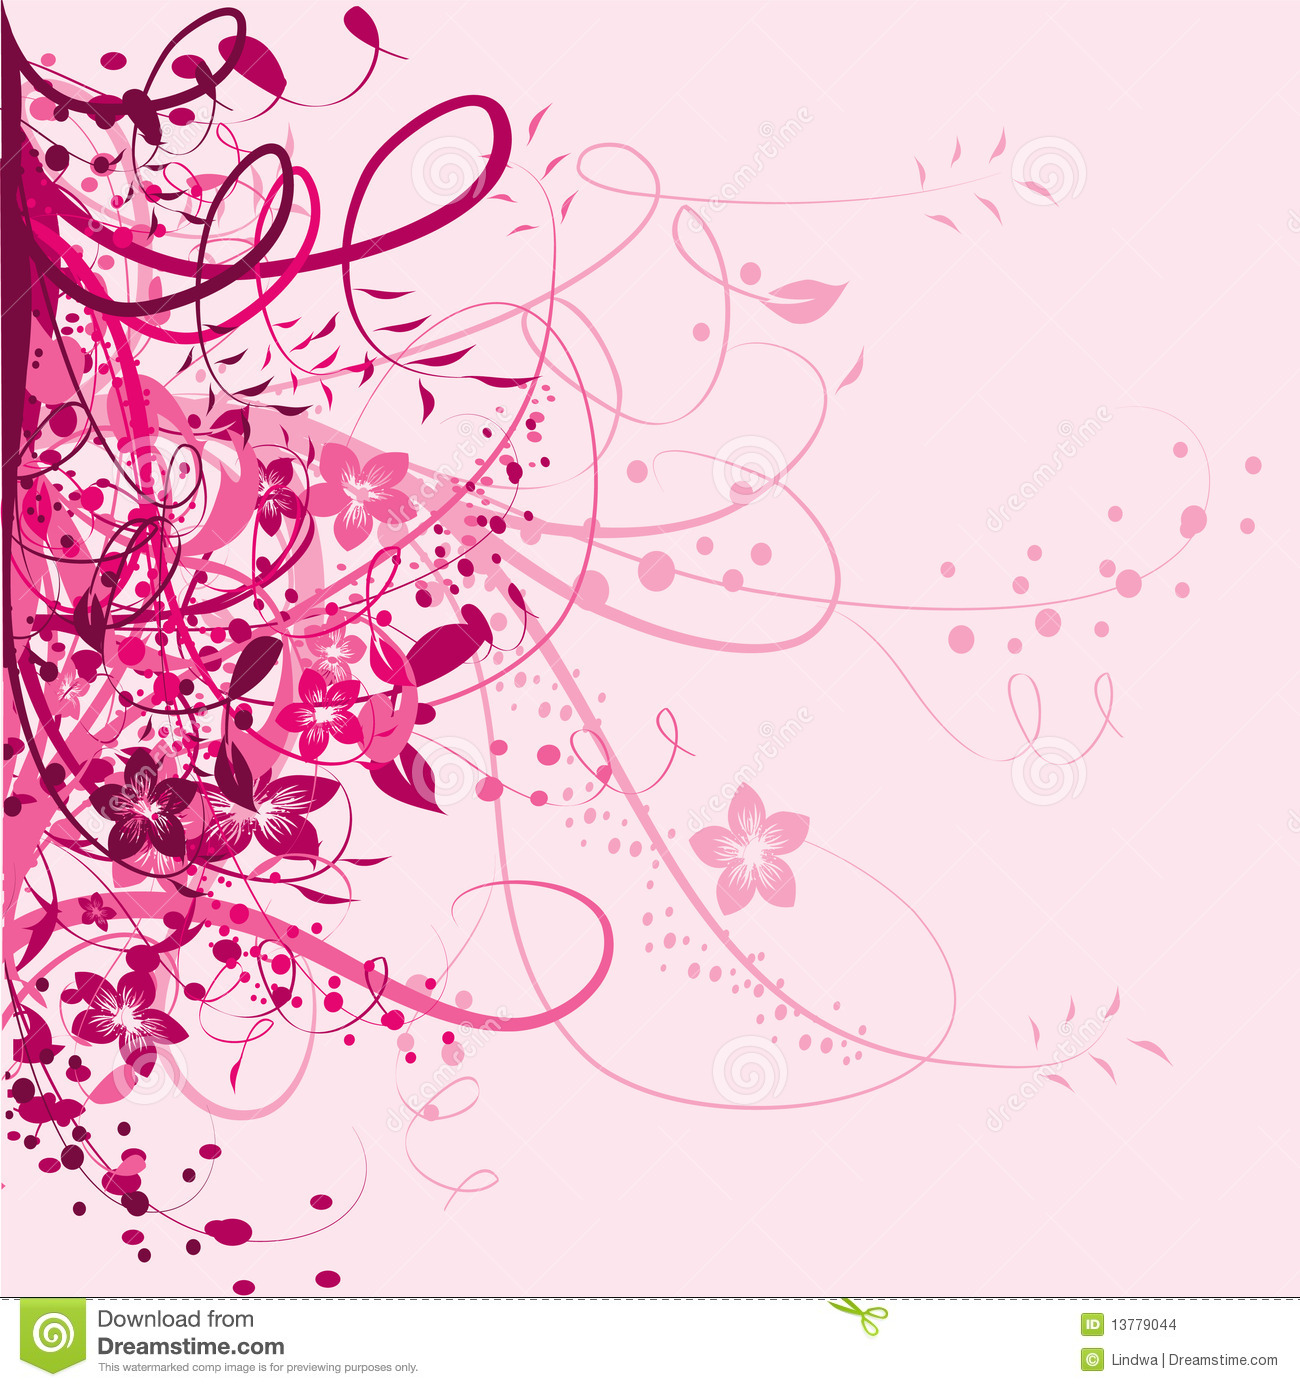 pink floral background jpg - photo #48